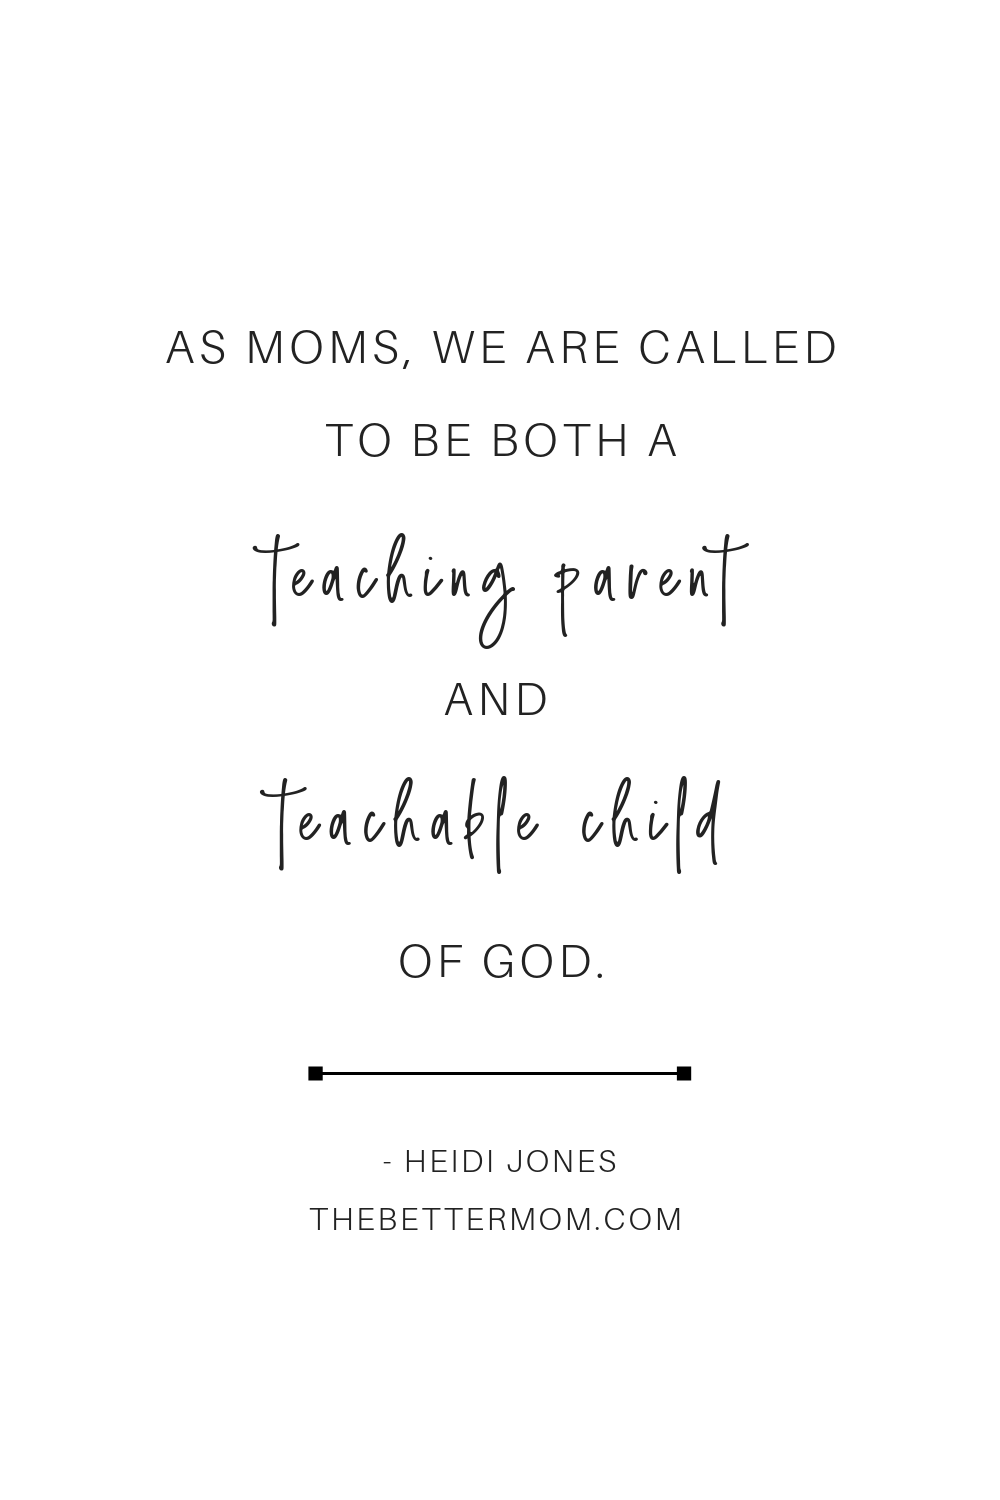 TBM-blog-teachable parent (1).png